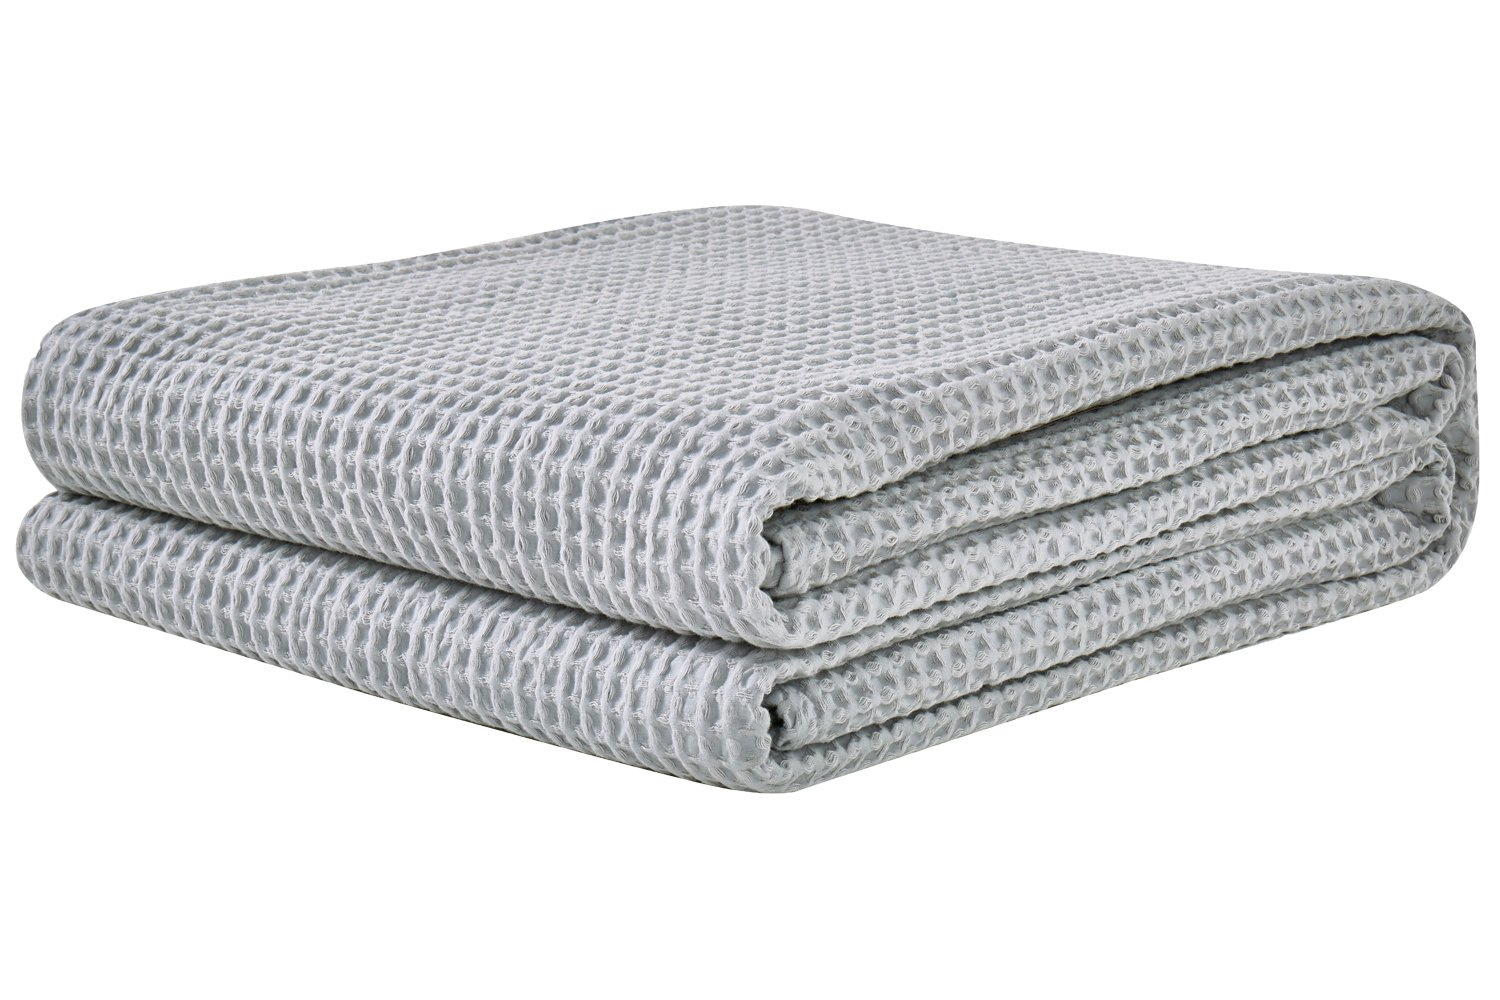 PHF Cotton Waffle Weave Bed Blanket Christmas Decorations Bed Home Decor in Winter King Size Light Grey